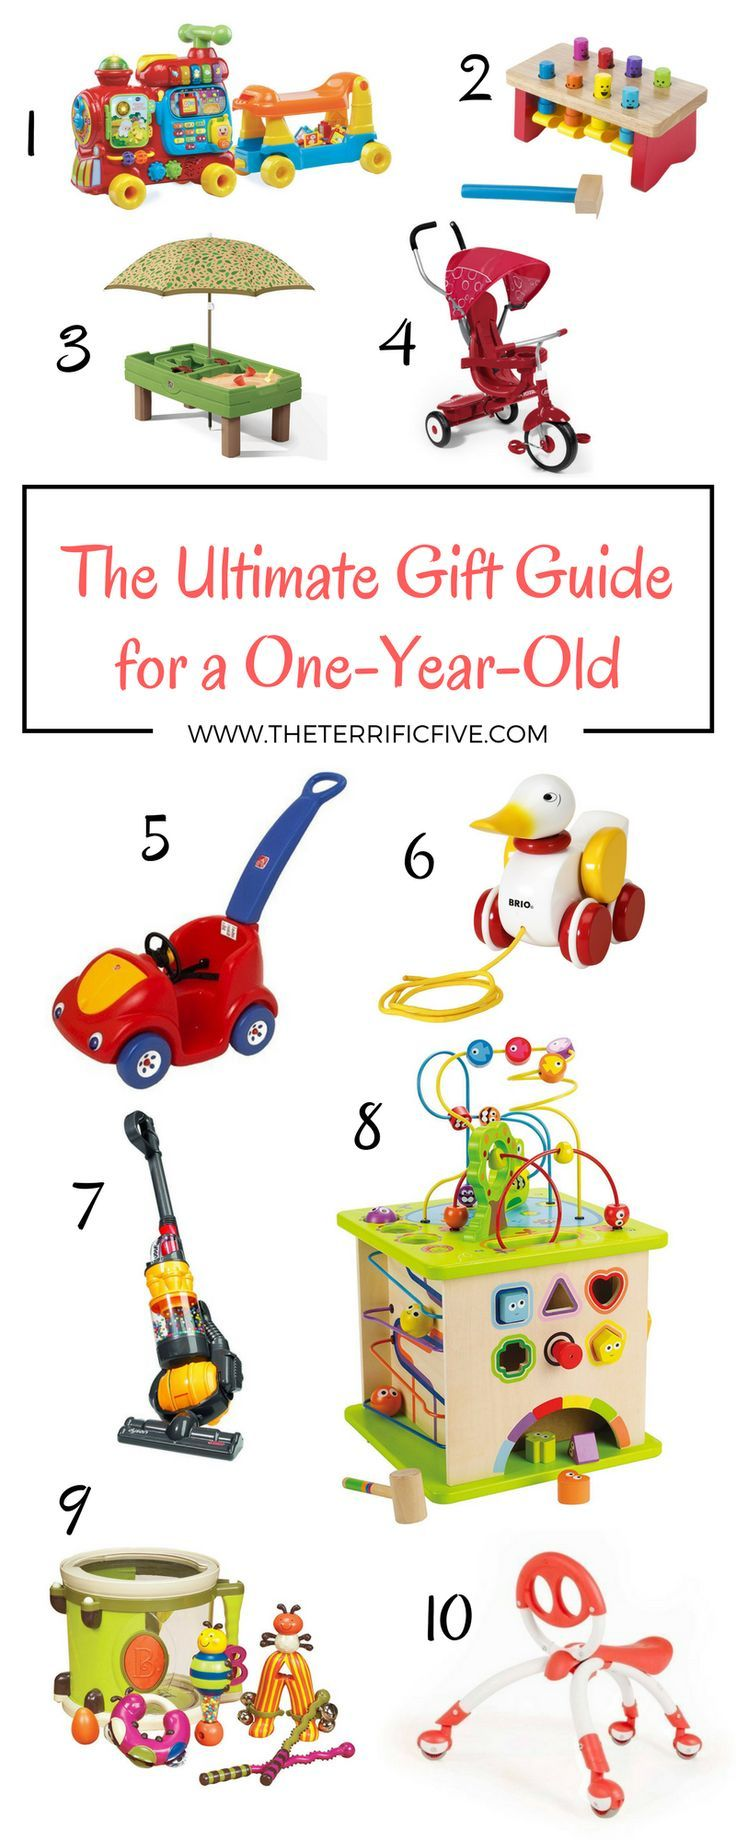 The Ultimate Gift Guide for a One-Year-Old: Tired of buying toys that your kids barely touch? Not sure what toys to bring to a baby's birthday party? Here are the top toys for one-year-old babies, tried and true by my own two kids!www.theterrificfive.com